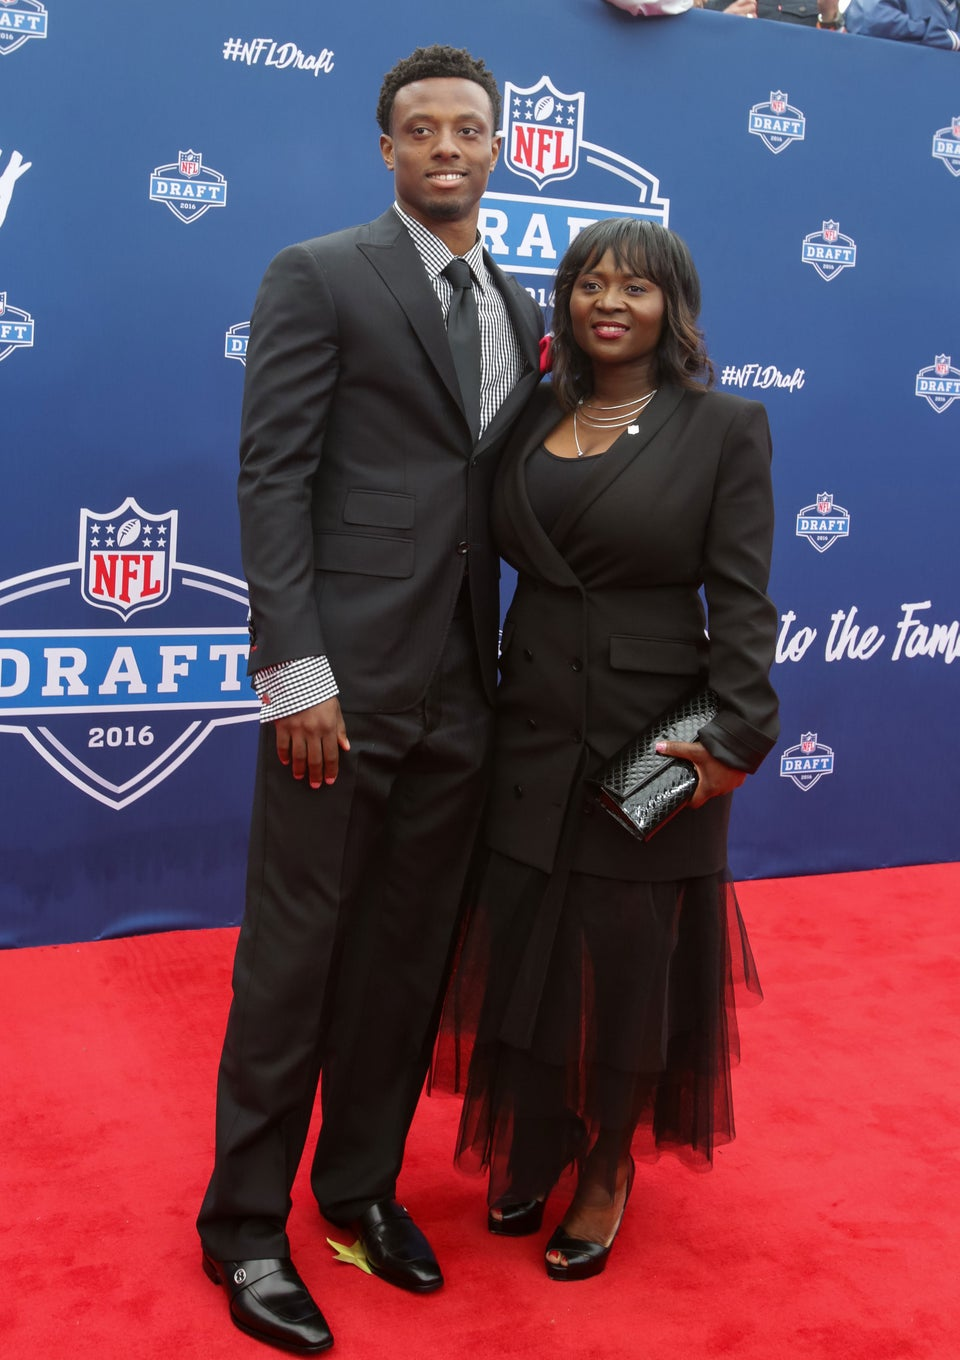 Eli Apple's Mom Knows What Goes Down In The DM